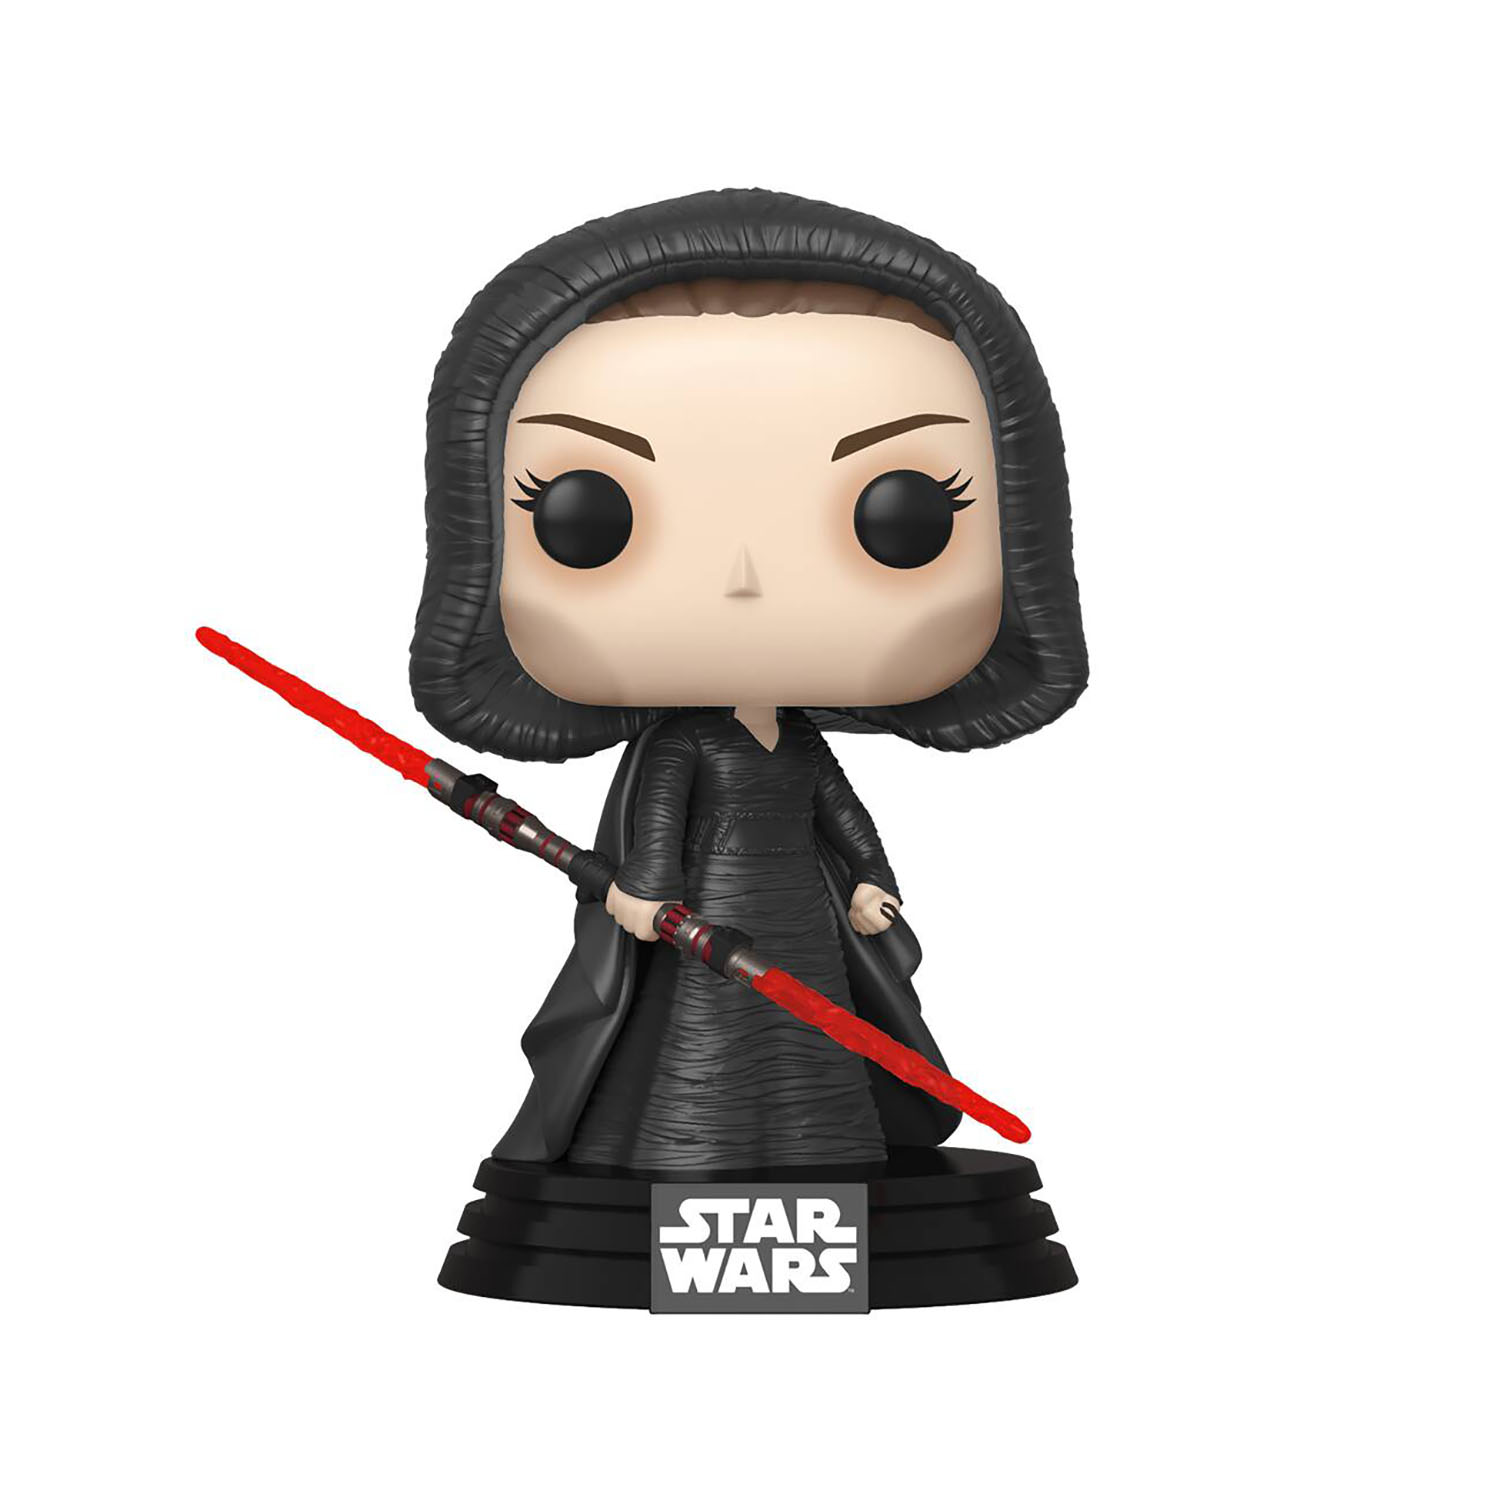 TROS Dark Rey and C-3PO (Red Eyes) Bobble Head Toy 2-Pack 3